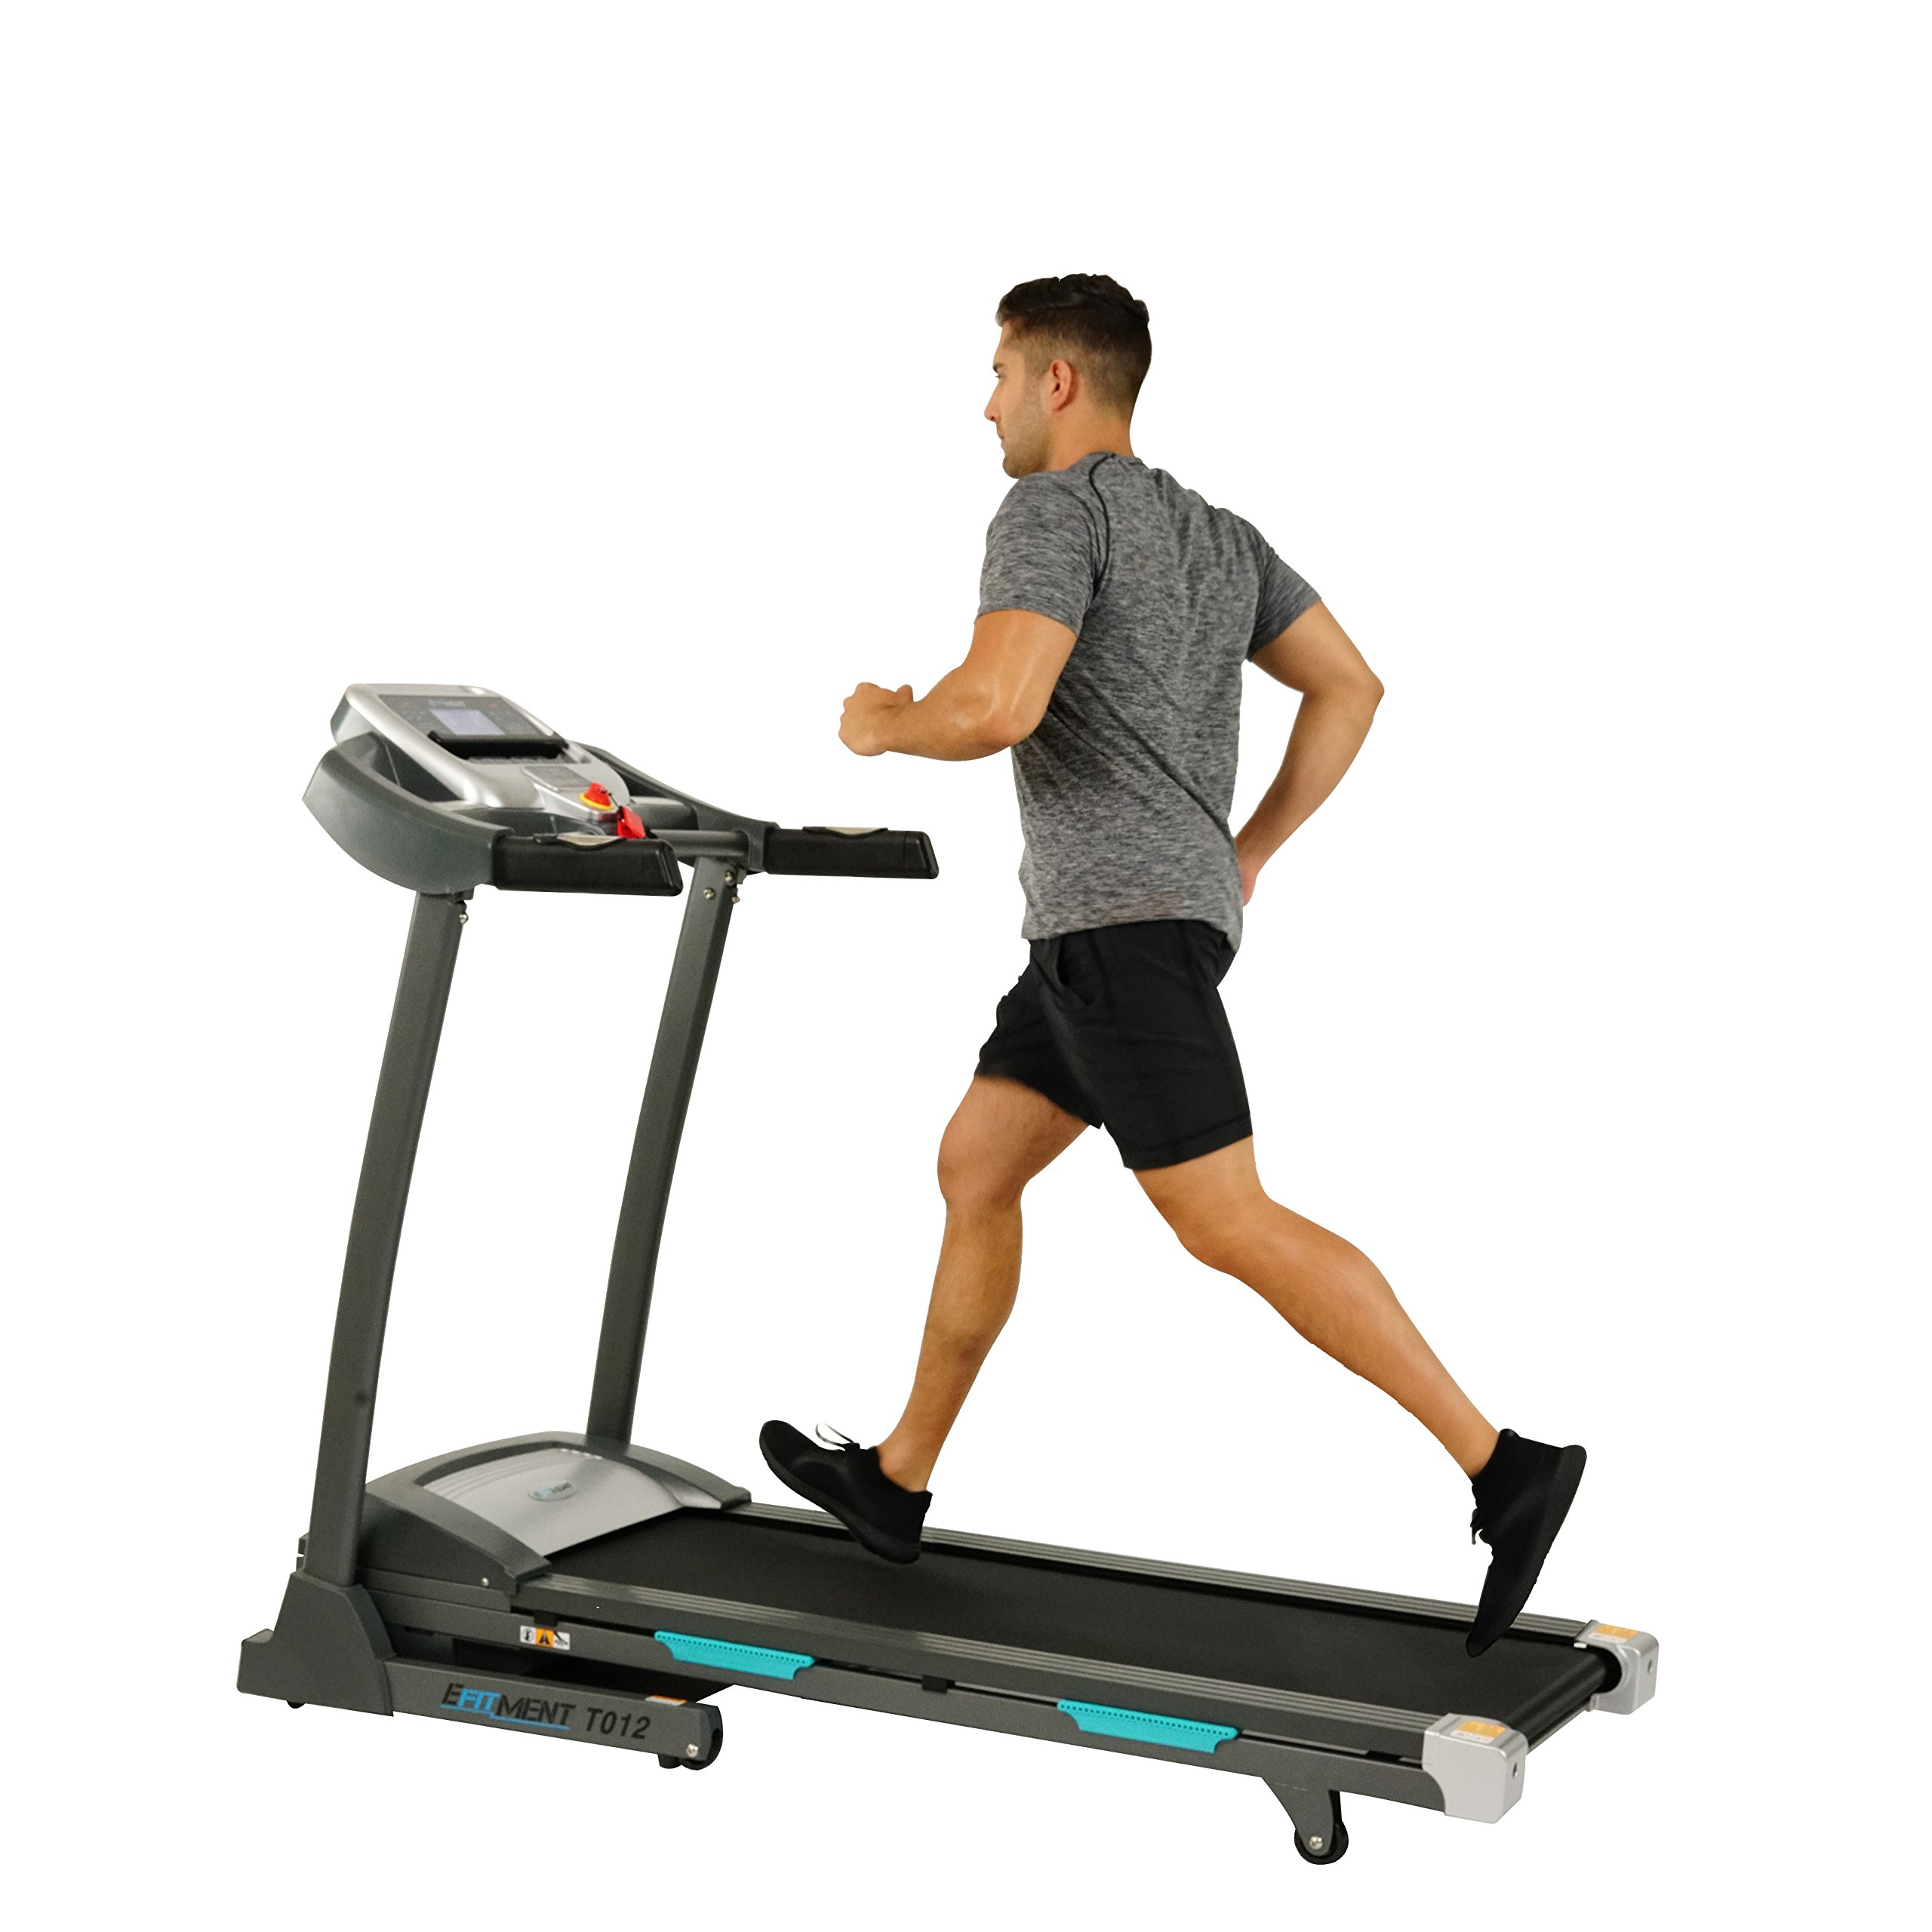 EFITMENT T012 Auto Incline Bluetooth Electric Treadmill at Amazon